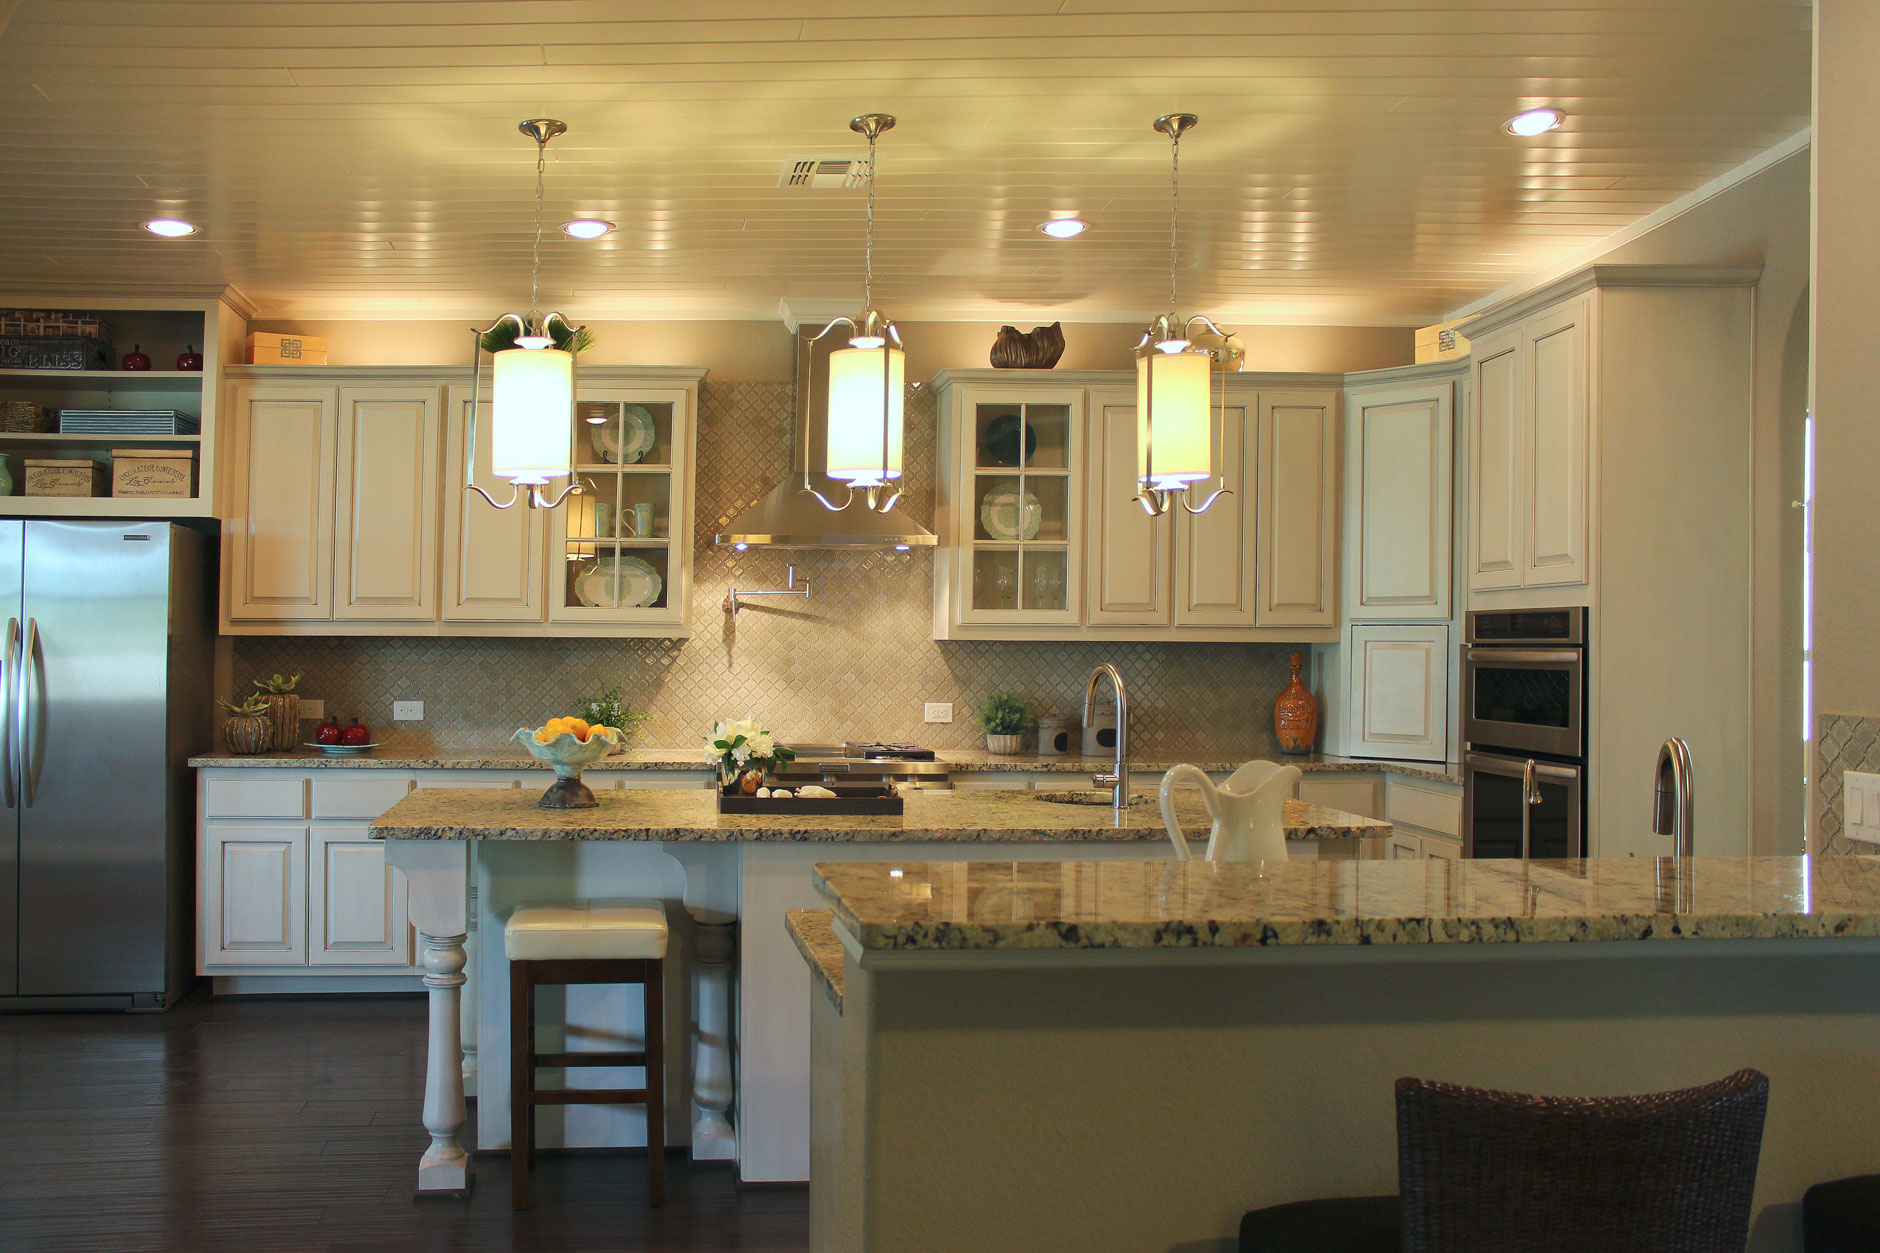 white kitchen cabinets - burrows cabinets - central texas builder